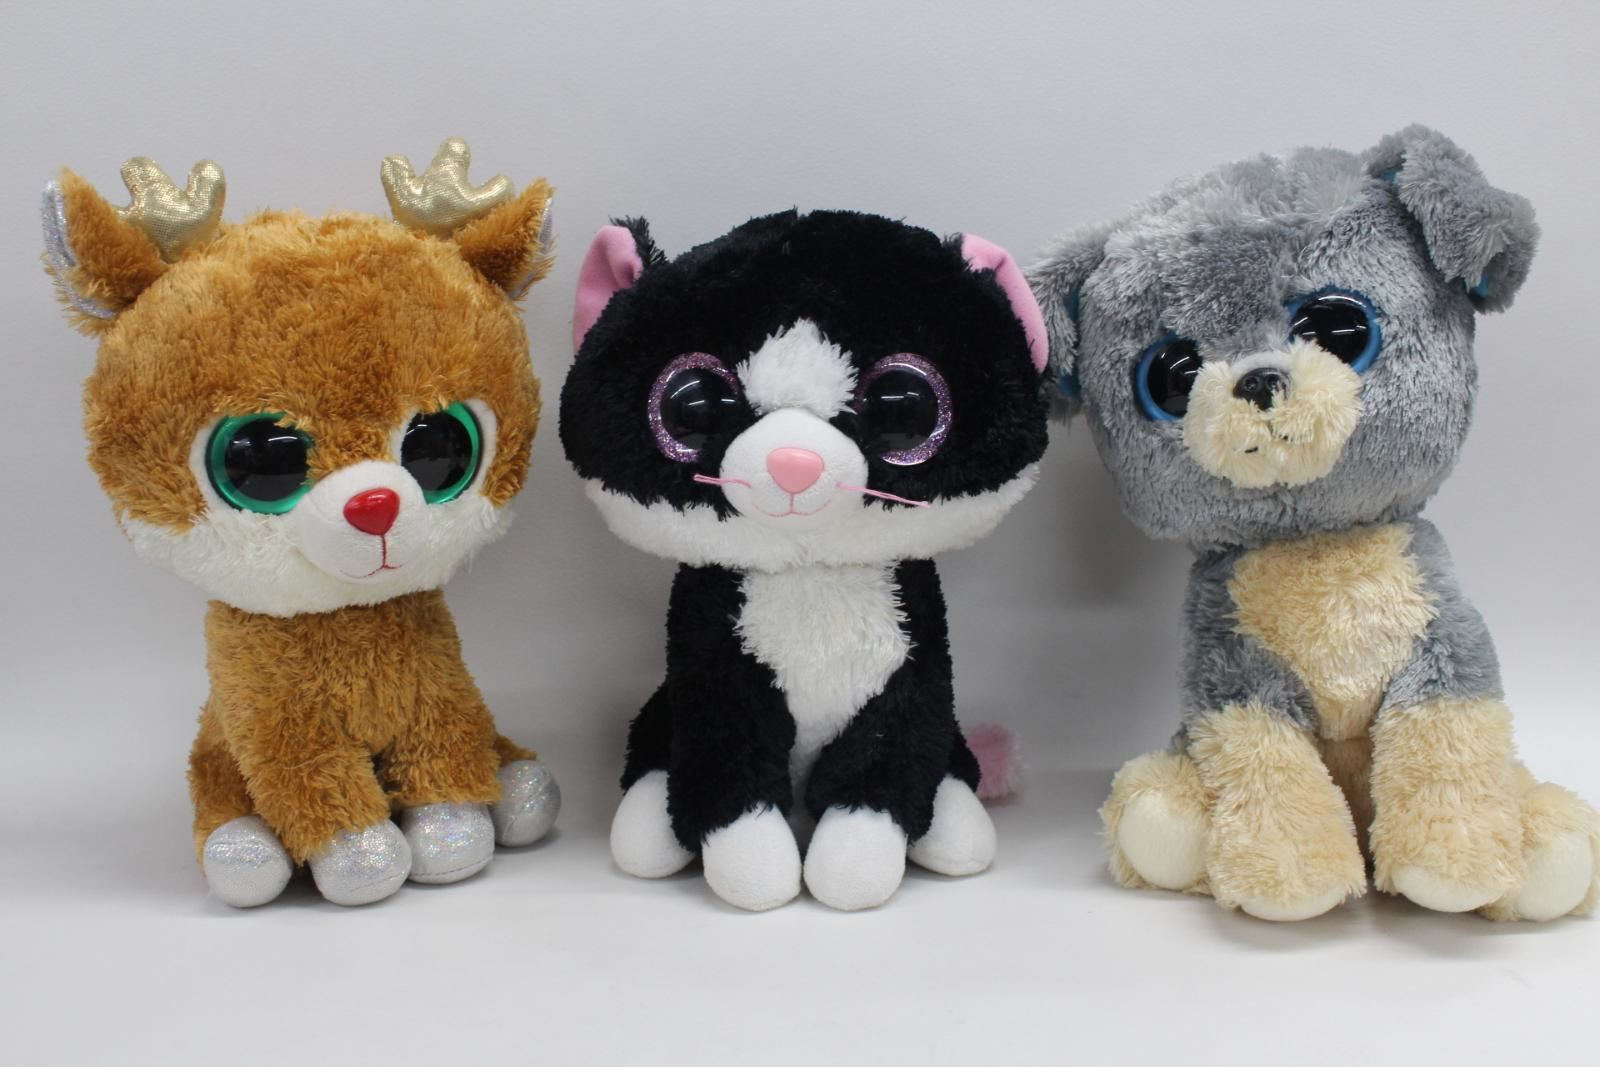 TY-Beanie-Boo-9-Inch-Pepper-The-Cat-Alpine-The-Reindeer-Soft-Plush-Toy-Bundle